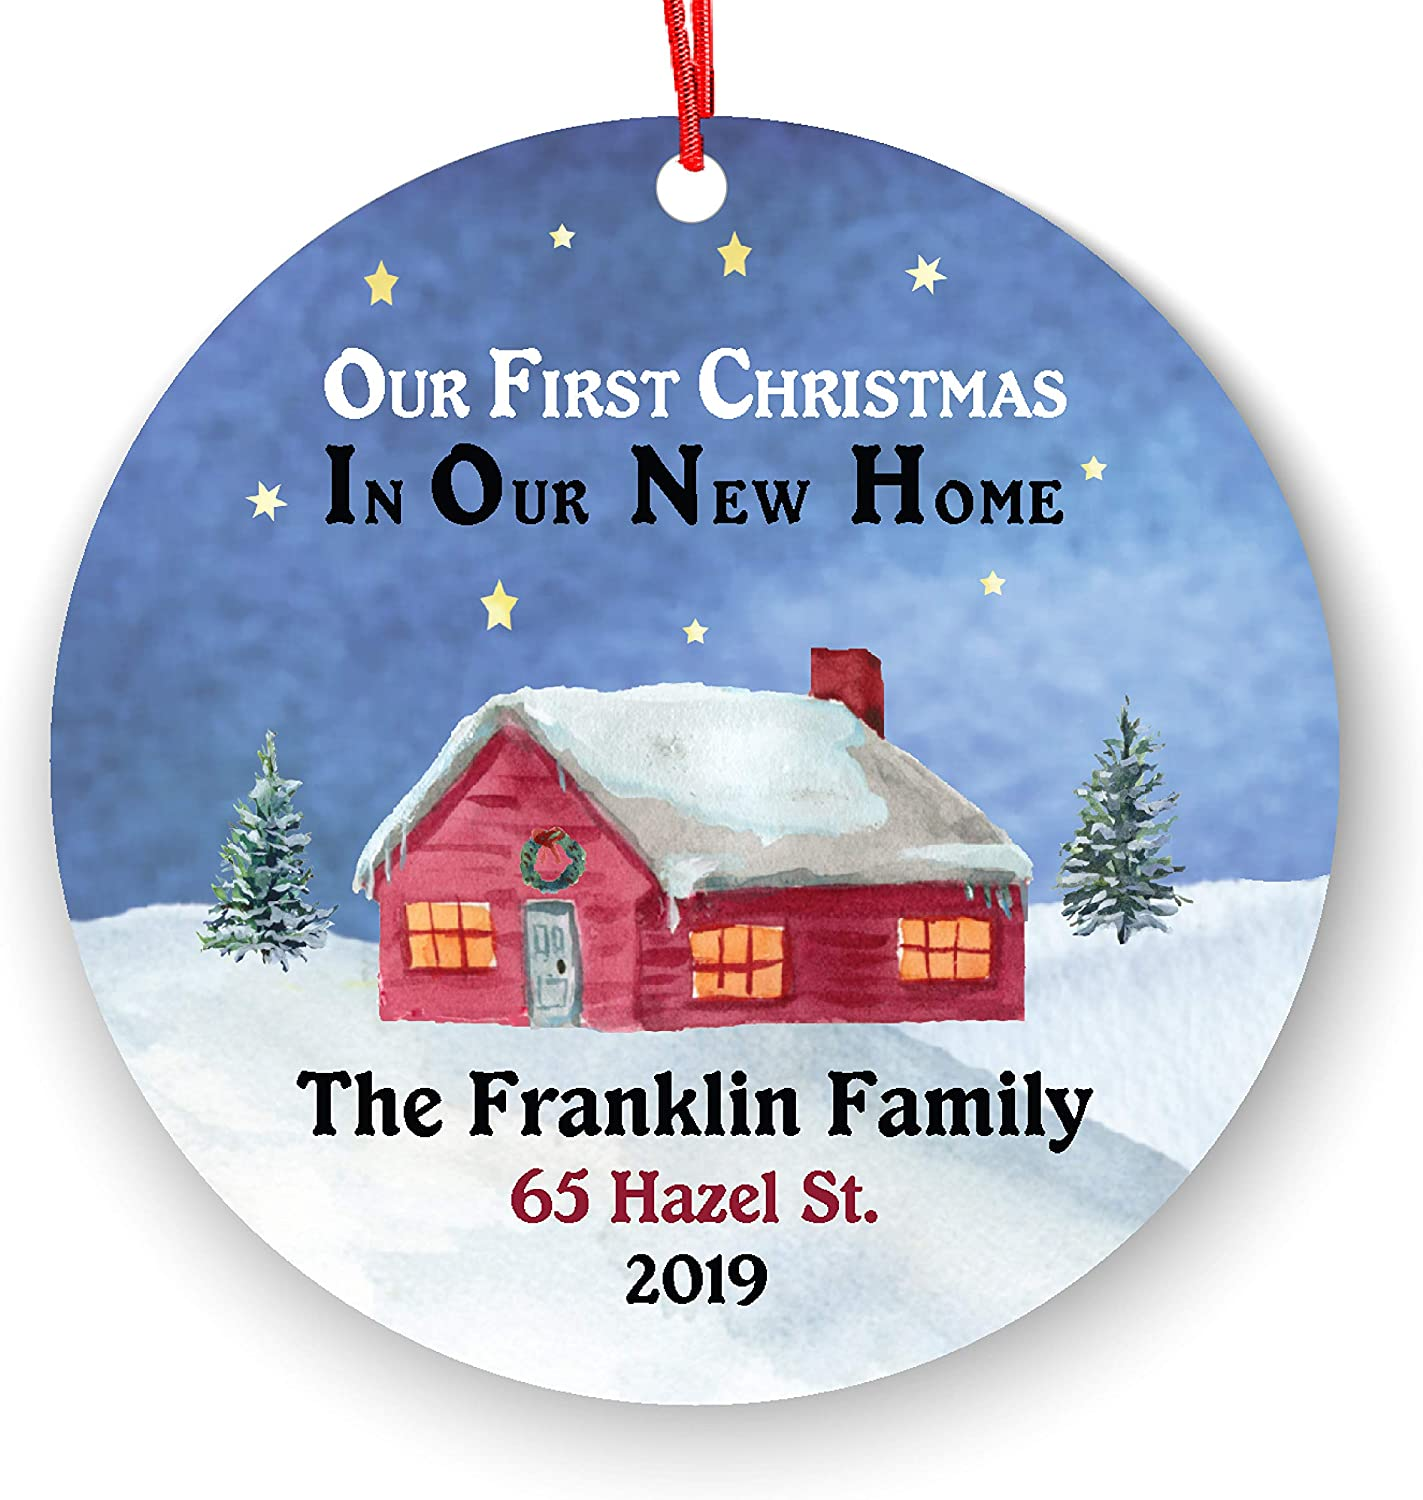 Personalized First Christmas Ranking integrated 1st place in Our Home New Ornament Housewarmi Philadelphia Mall